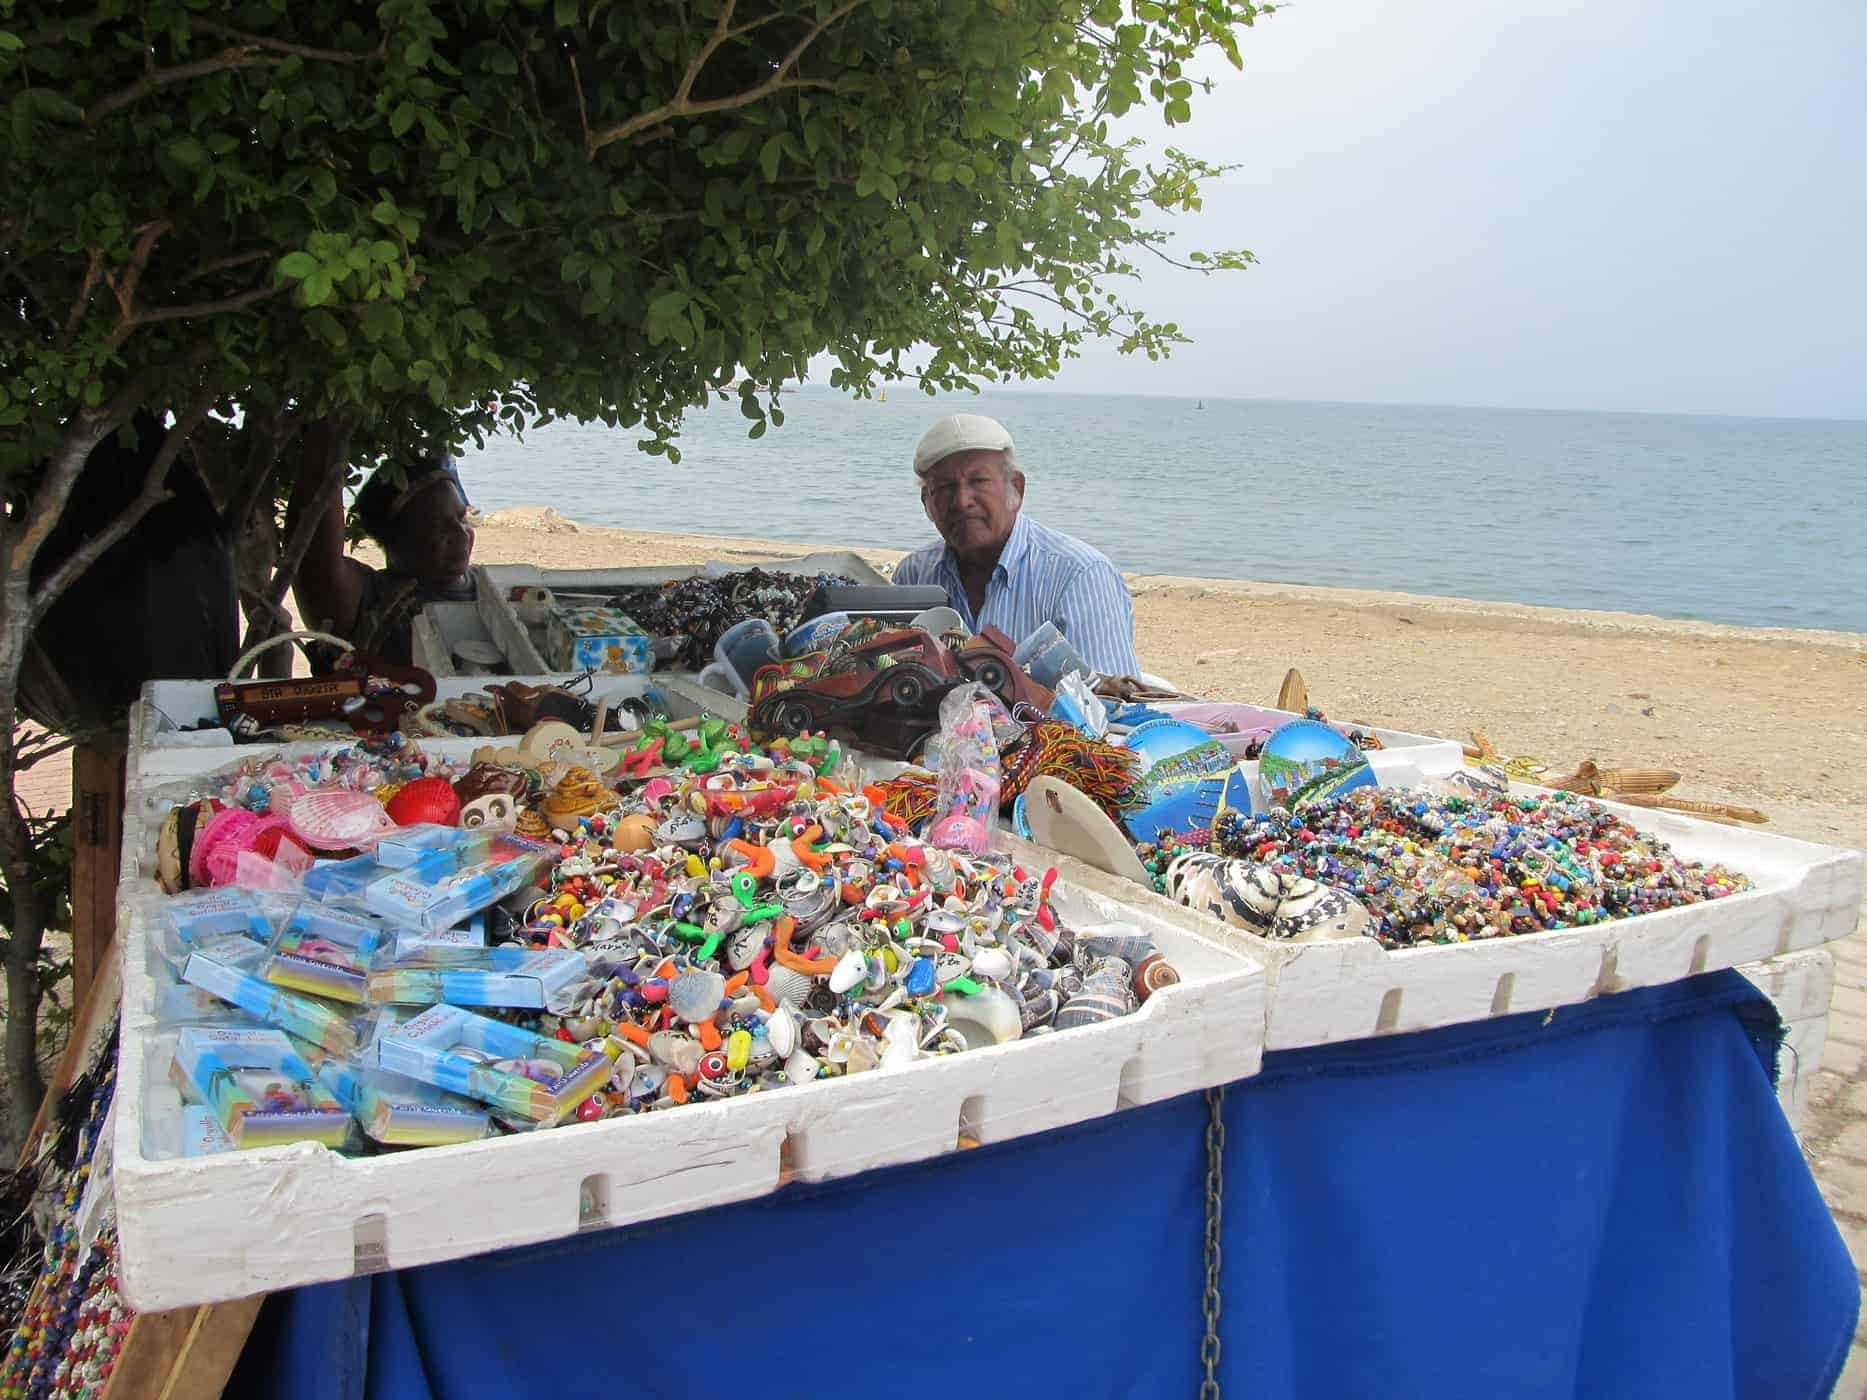 A local sells his wares on the beachfront in Santa Marta, Colombia.